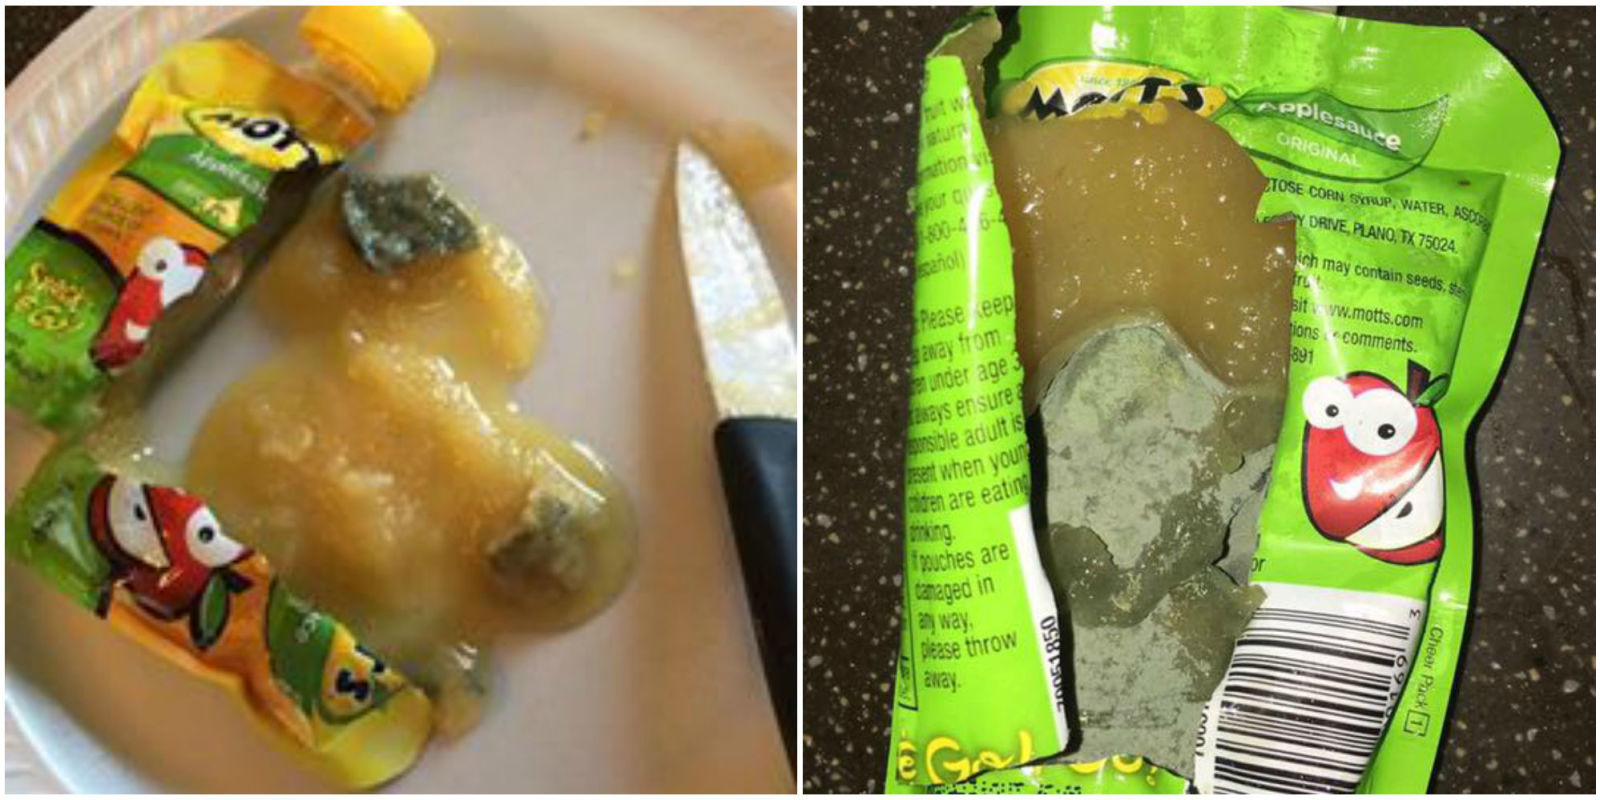 Mom Finds Mold In Motts Applesauce Photos Of Green Gunk